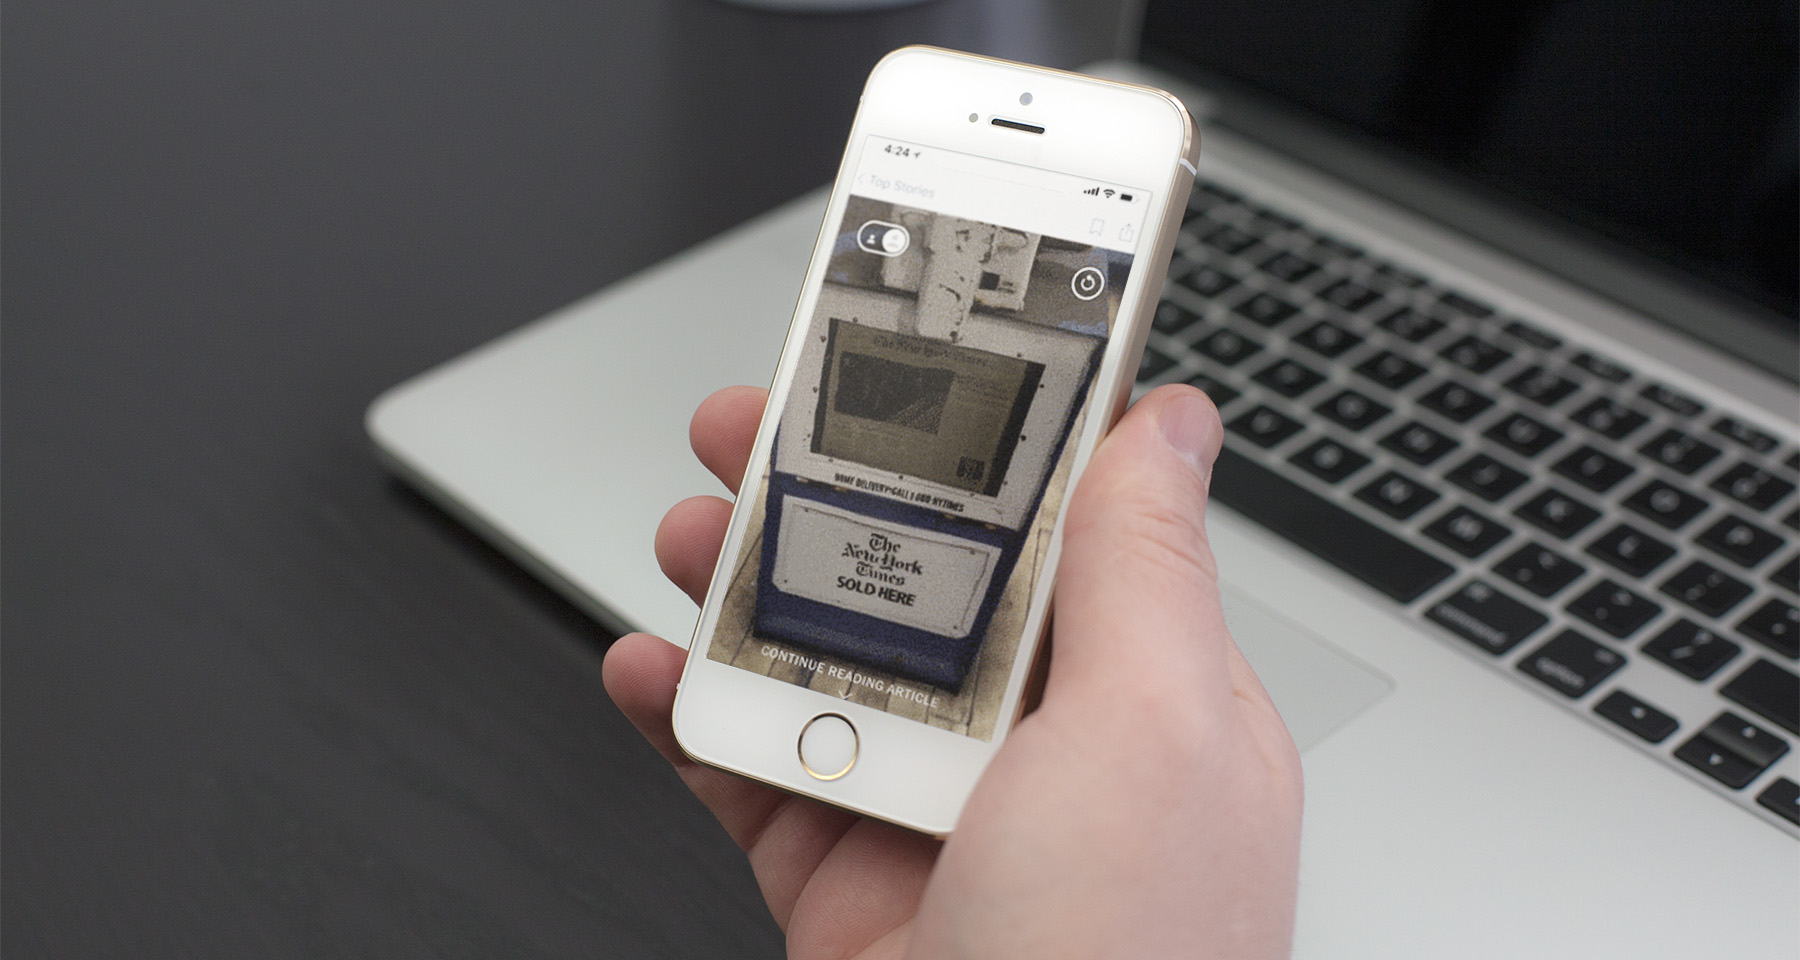 Mobile cameras morph into AR devices, forever changing journalism